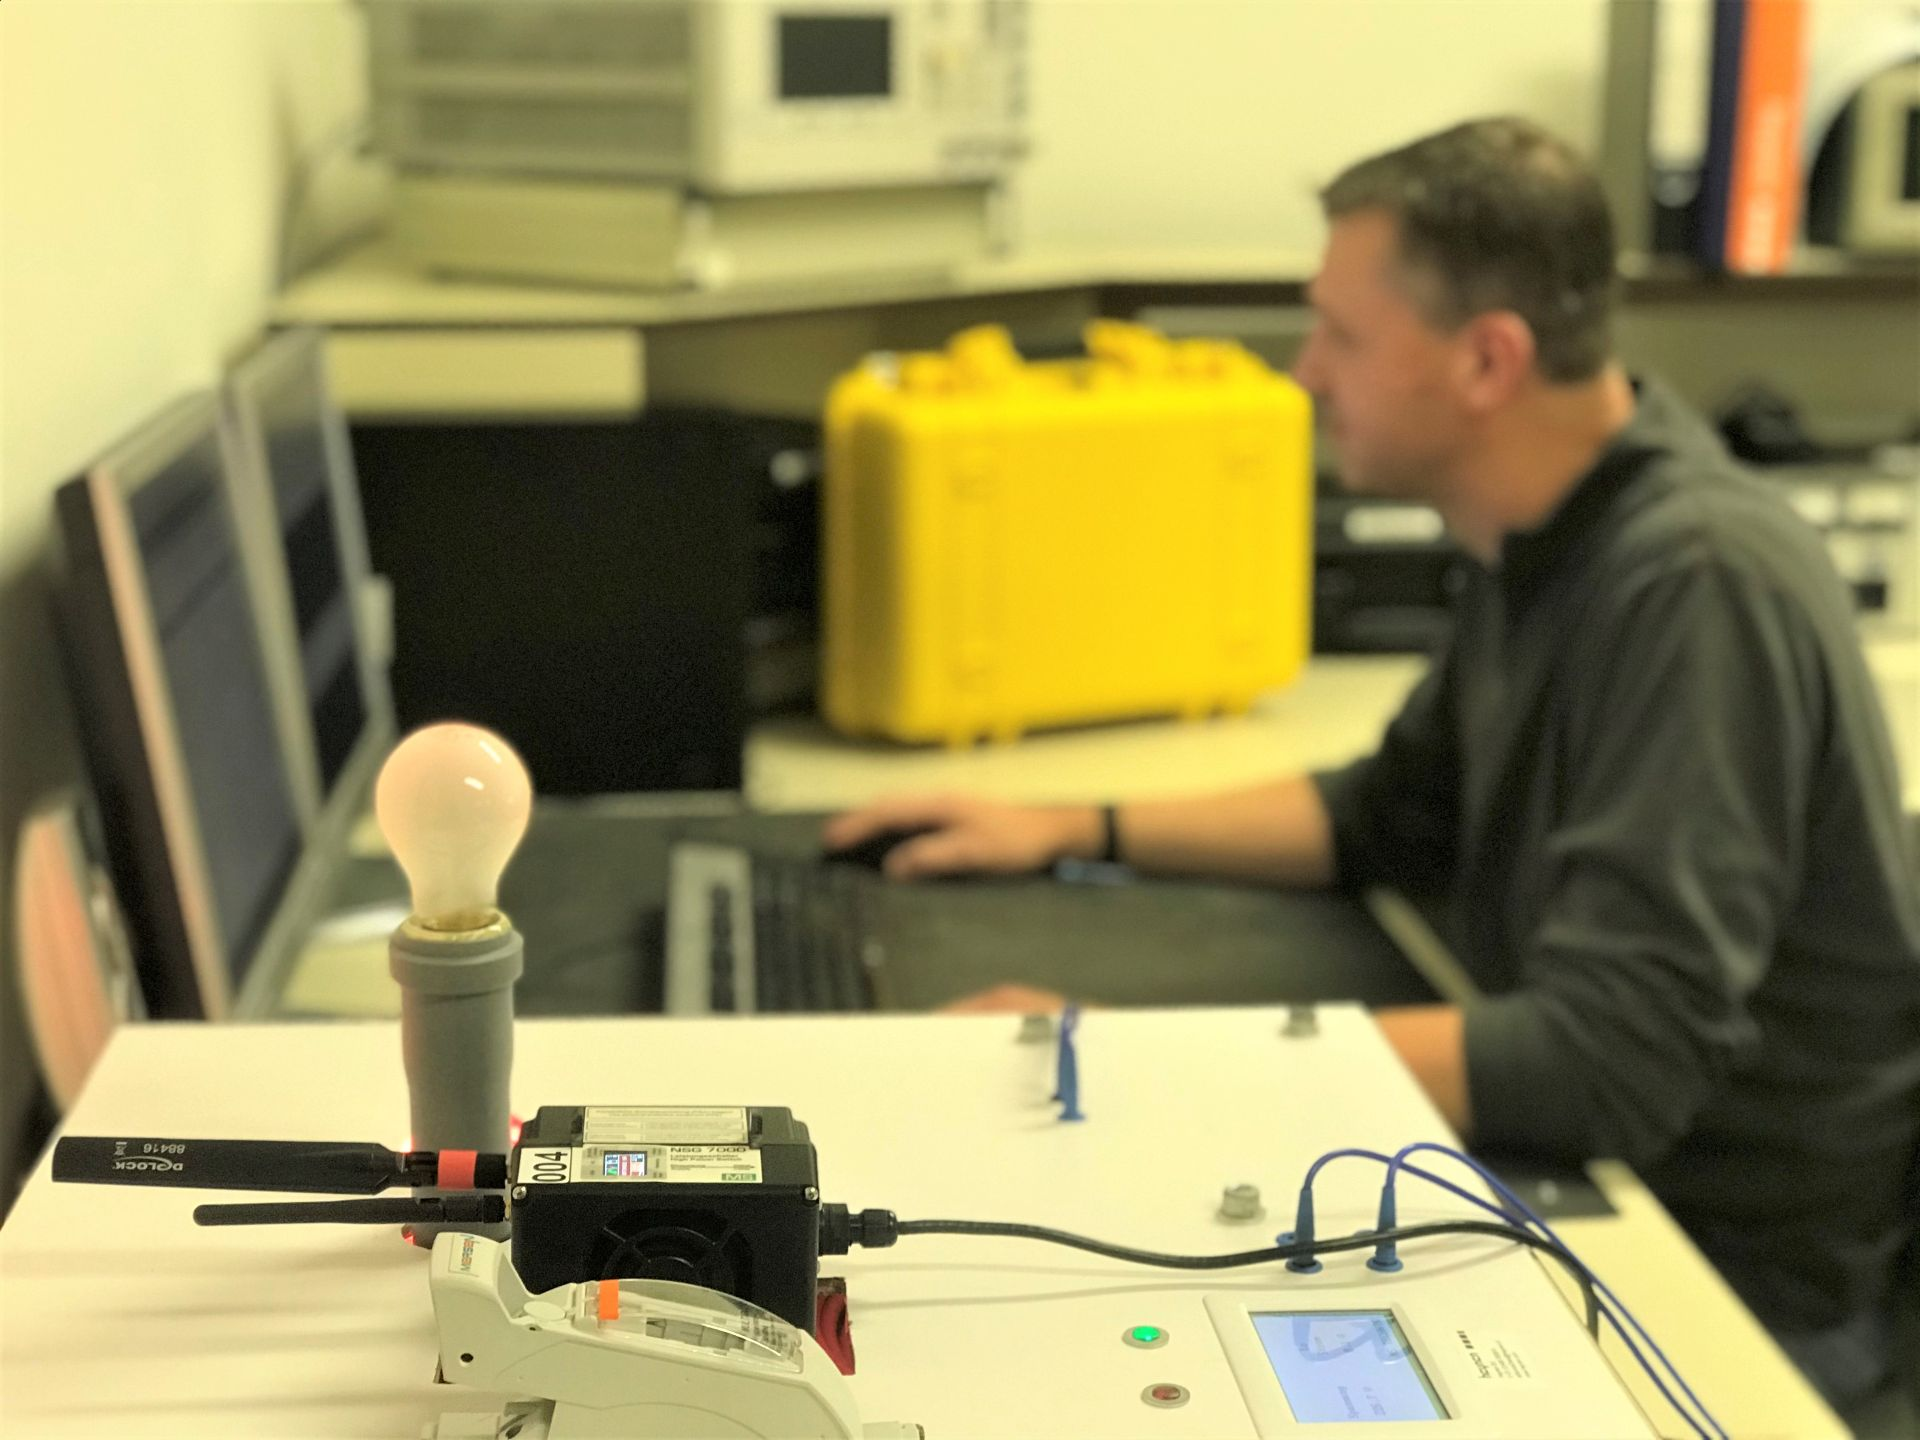 Heynen maintains, repairs and calibrates MS-Technik equipment on a daily basis